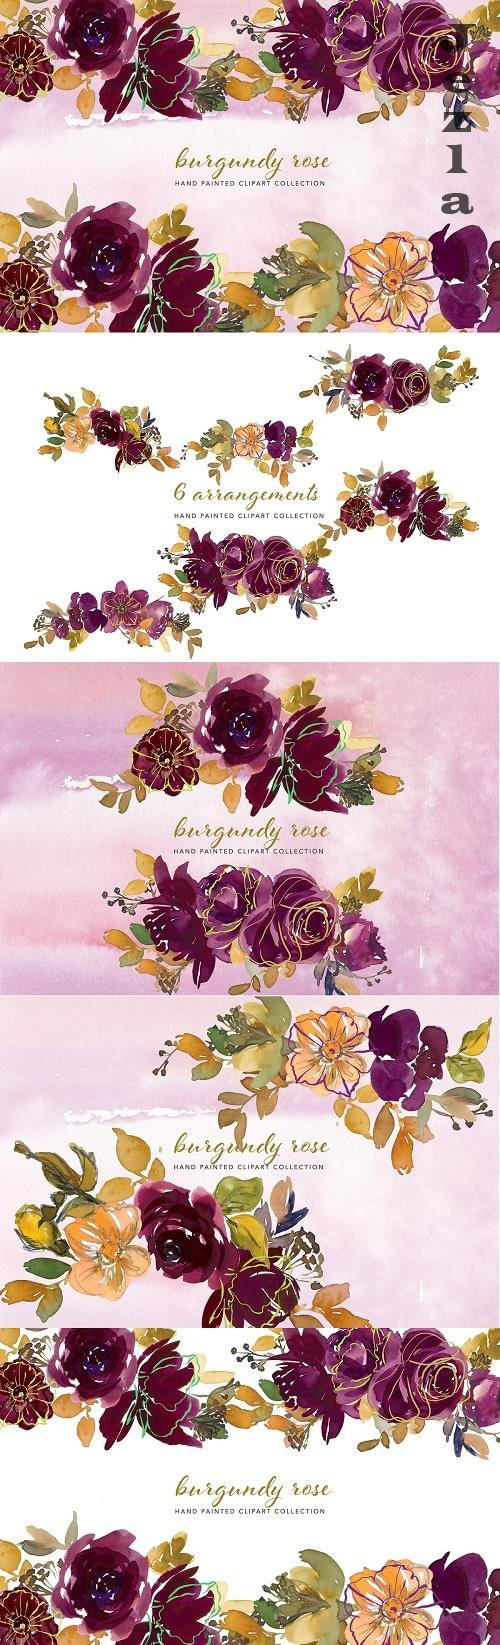 Watercolor Burgundy Floral Clipart - 5136891